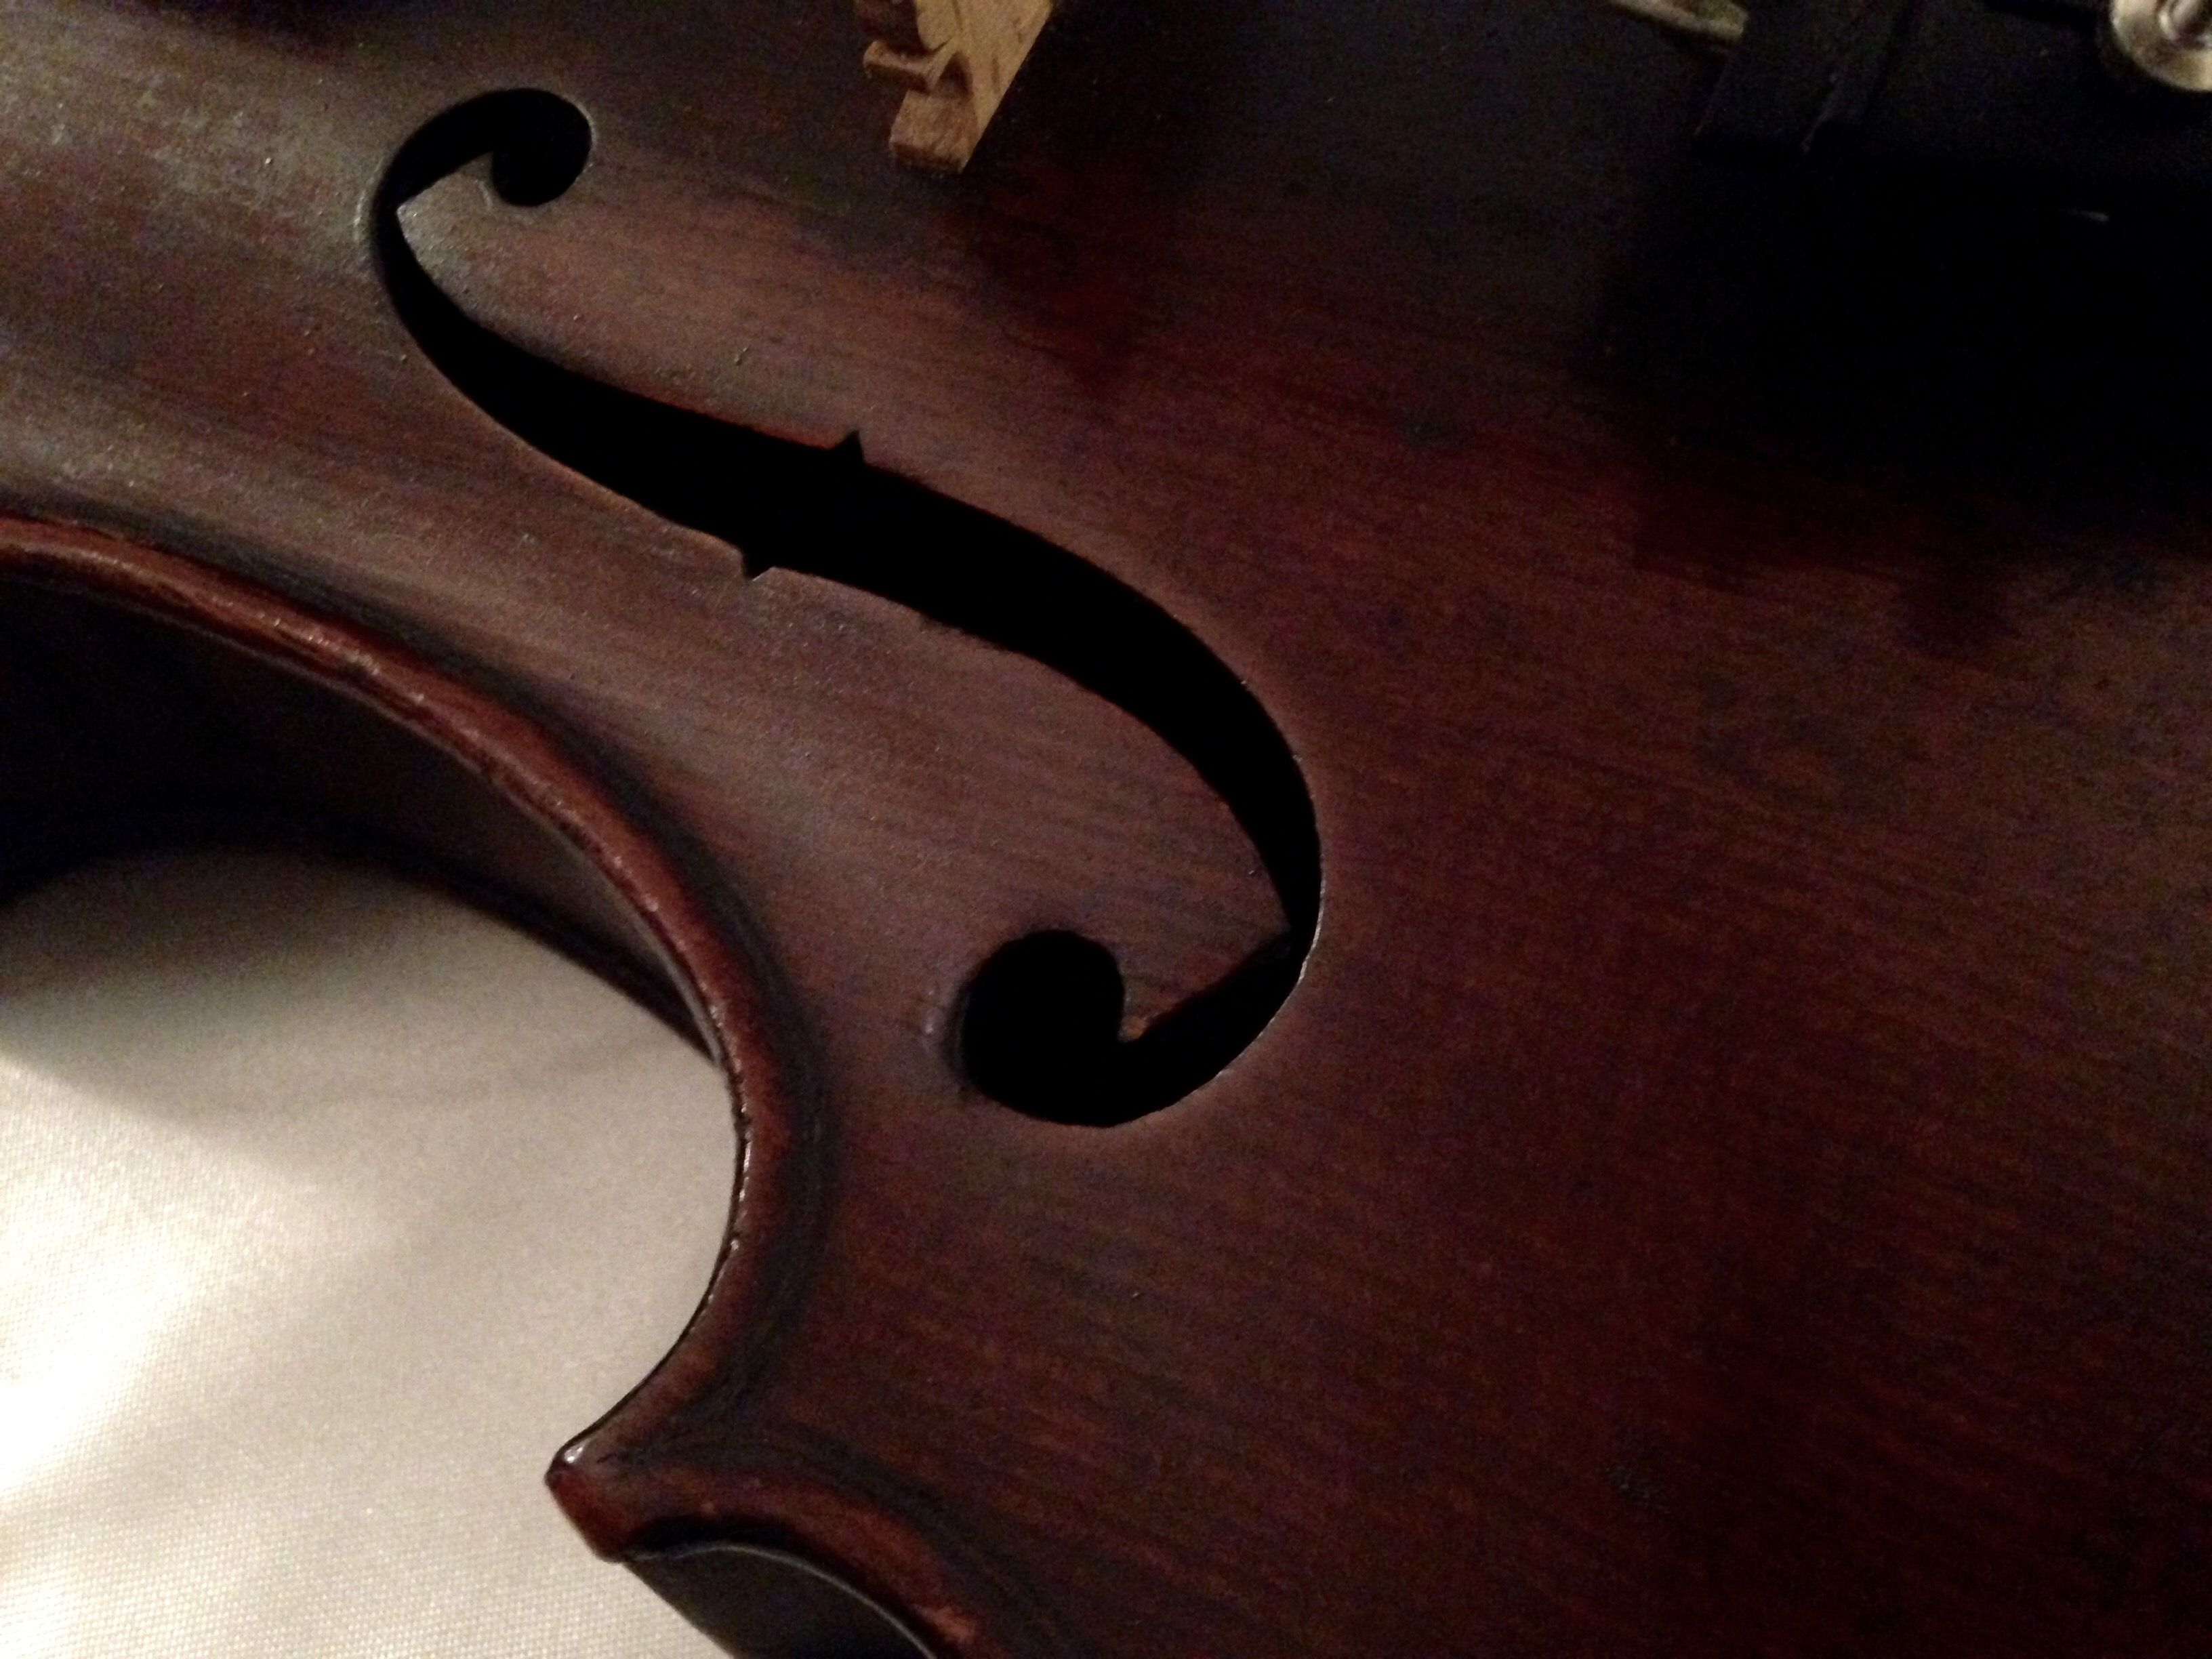 More than music Violin, Music instruments, Neutral colors